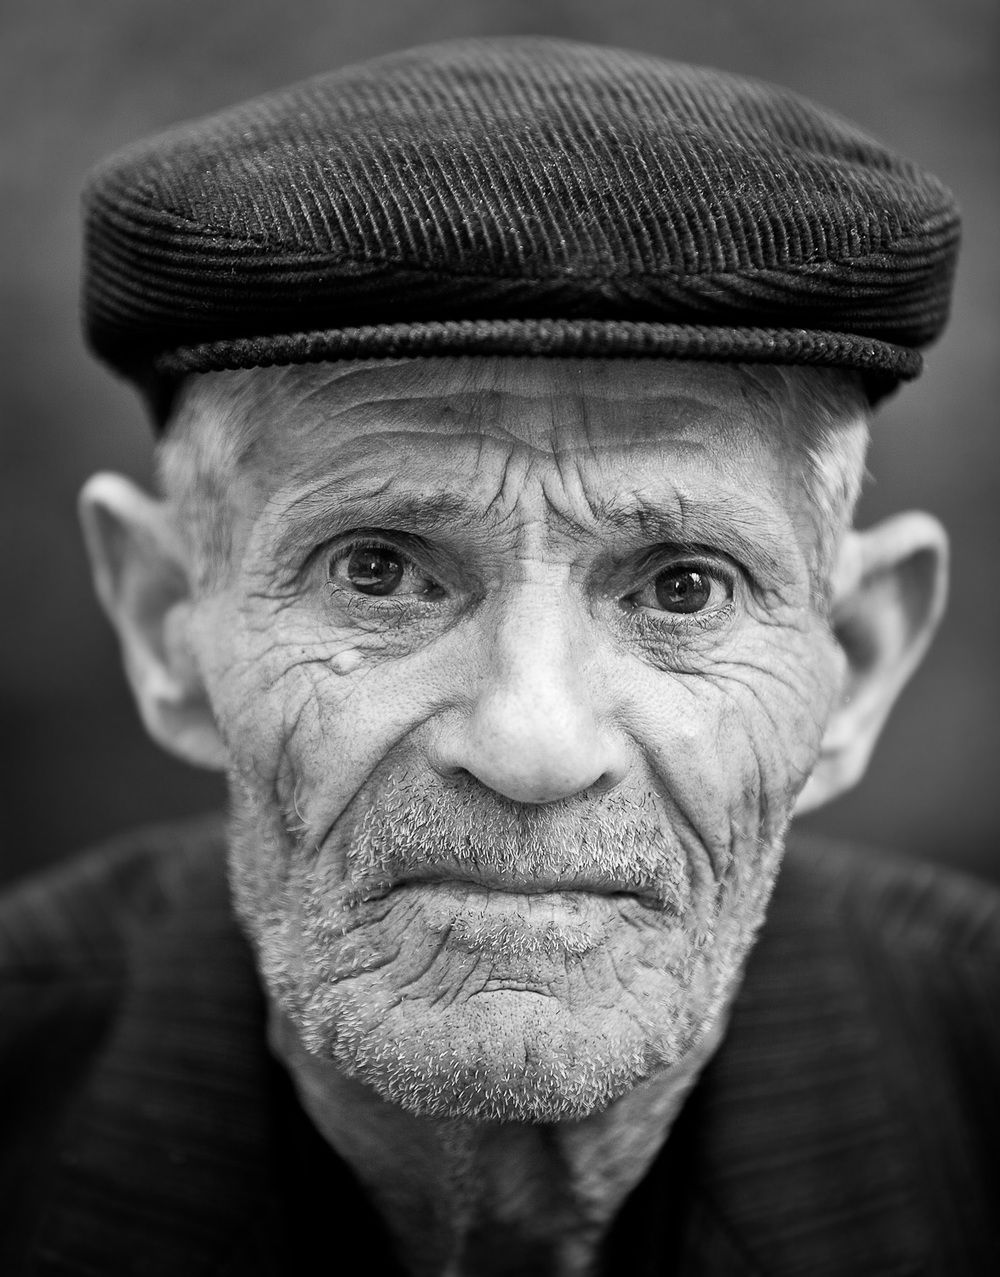 Black And White Photo Of Old Man